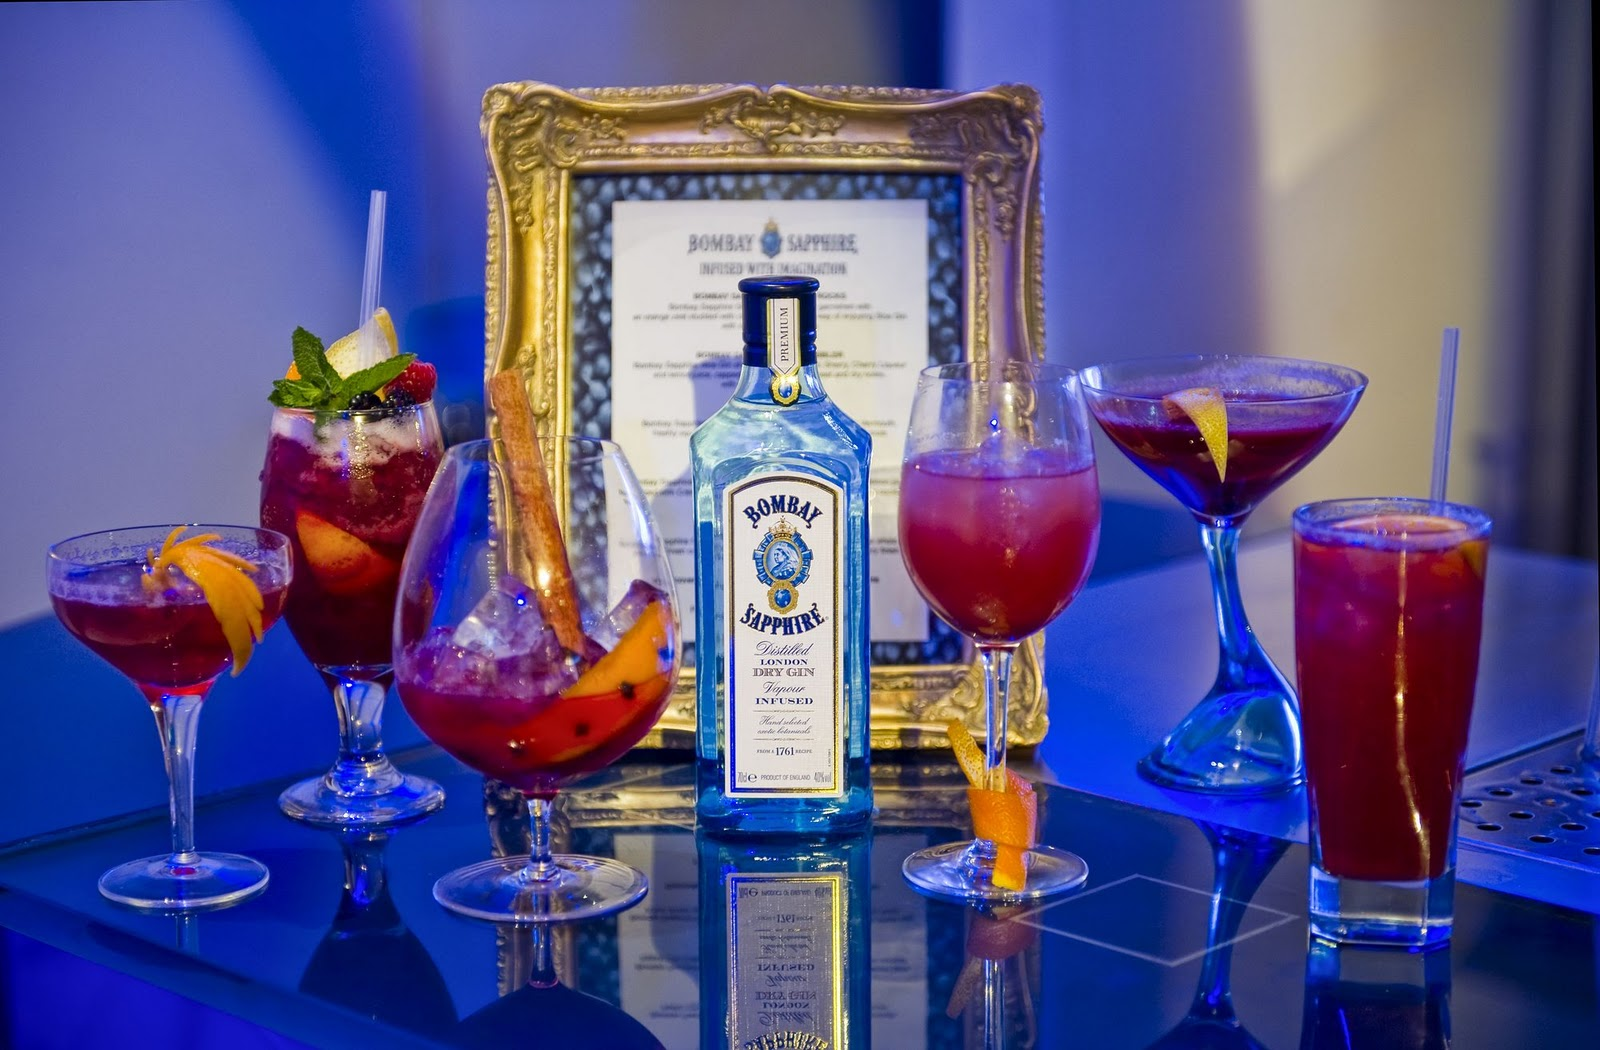 Bombay sapphire sloe gin london on the inside for Mixed drinks using gin